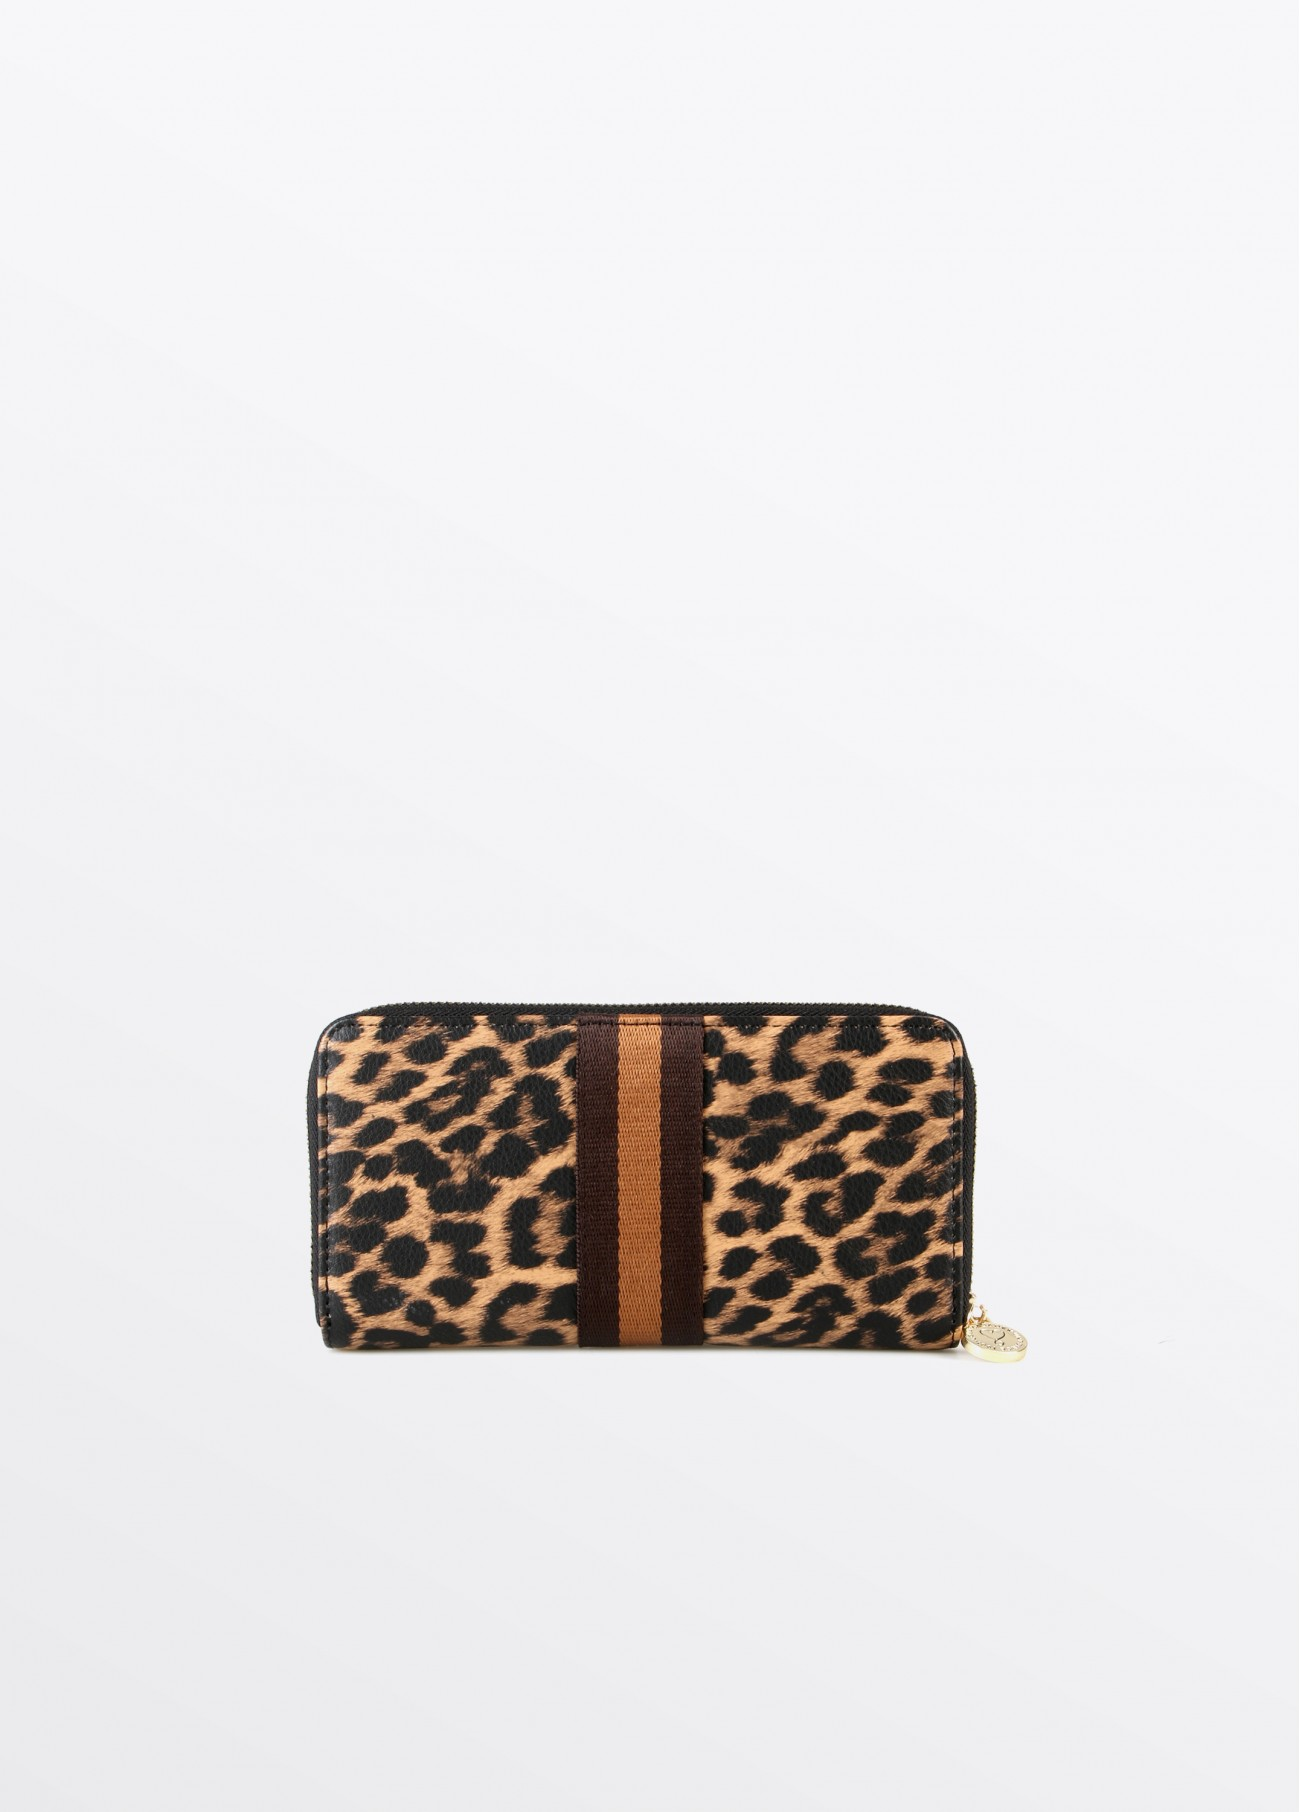 Monedero leopardo, estampado